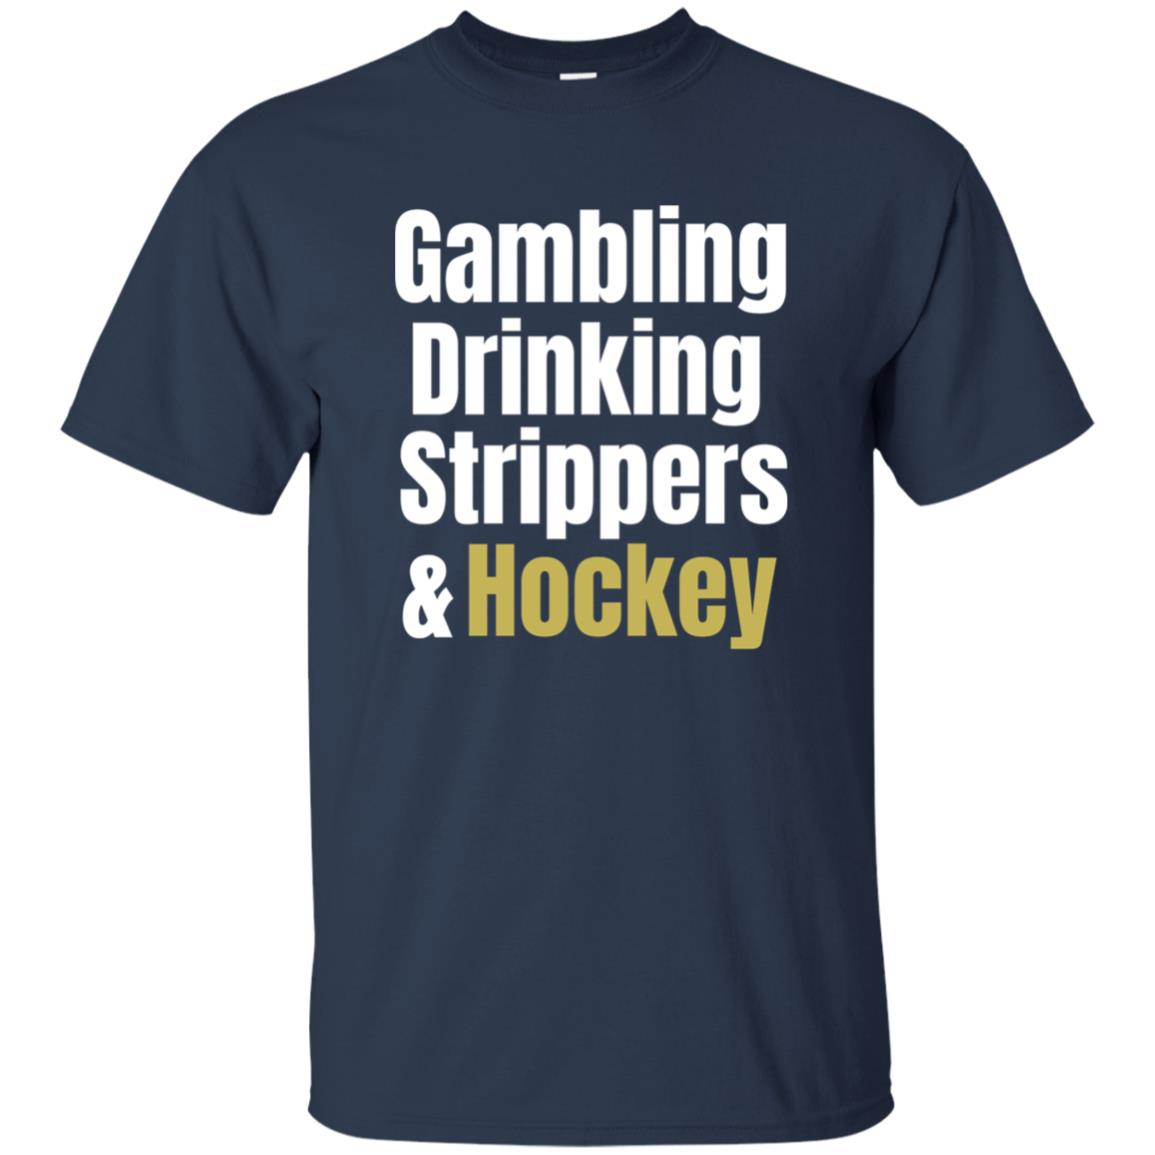 Gambling, Drinking, Strippers and Hockey Unisex Short Sleeve